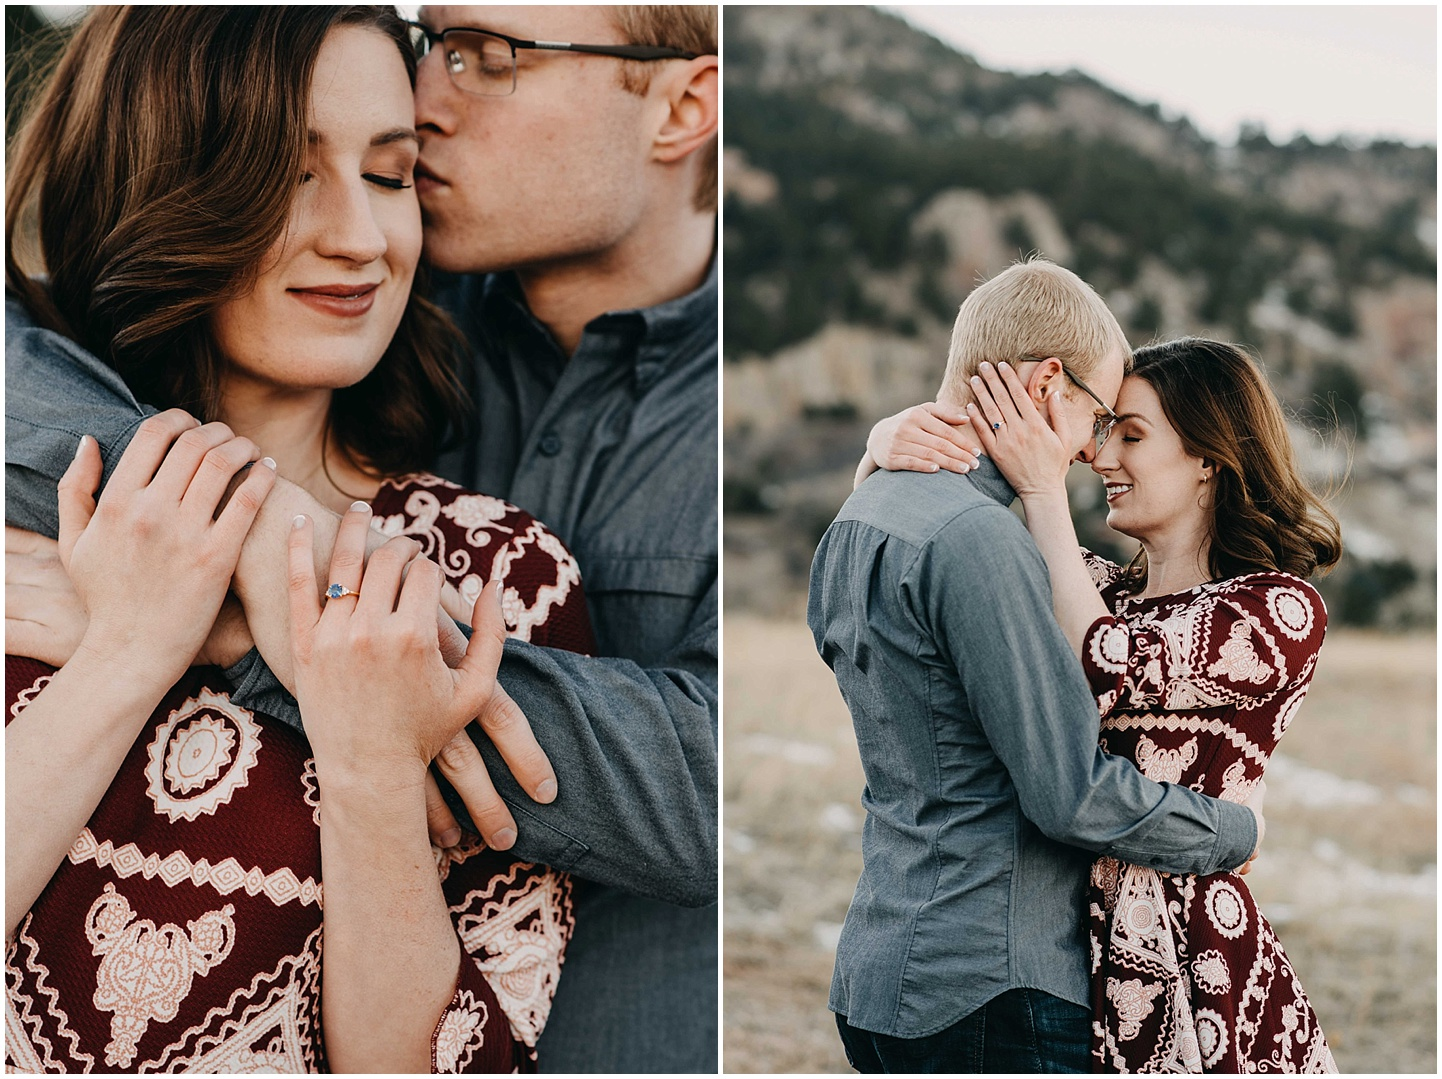 A close up of Trinity and Peter embracing on the left, and them swaying softly on the right. We got together the day after New Years for a fun outdoor engagement session at Chautauqua in Boulder, Colorado.